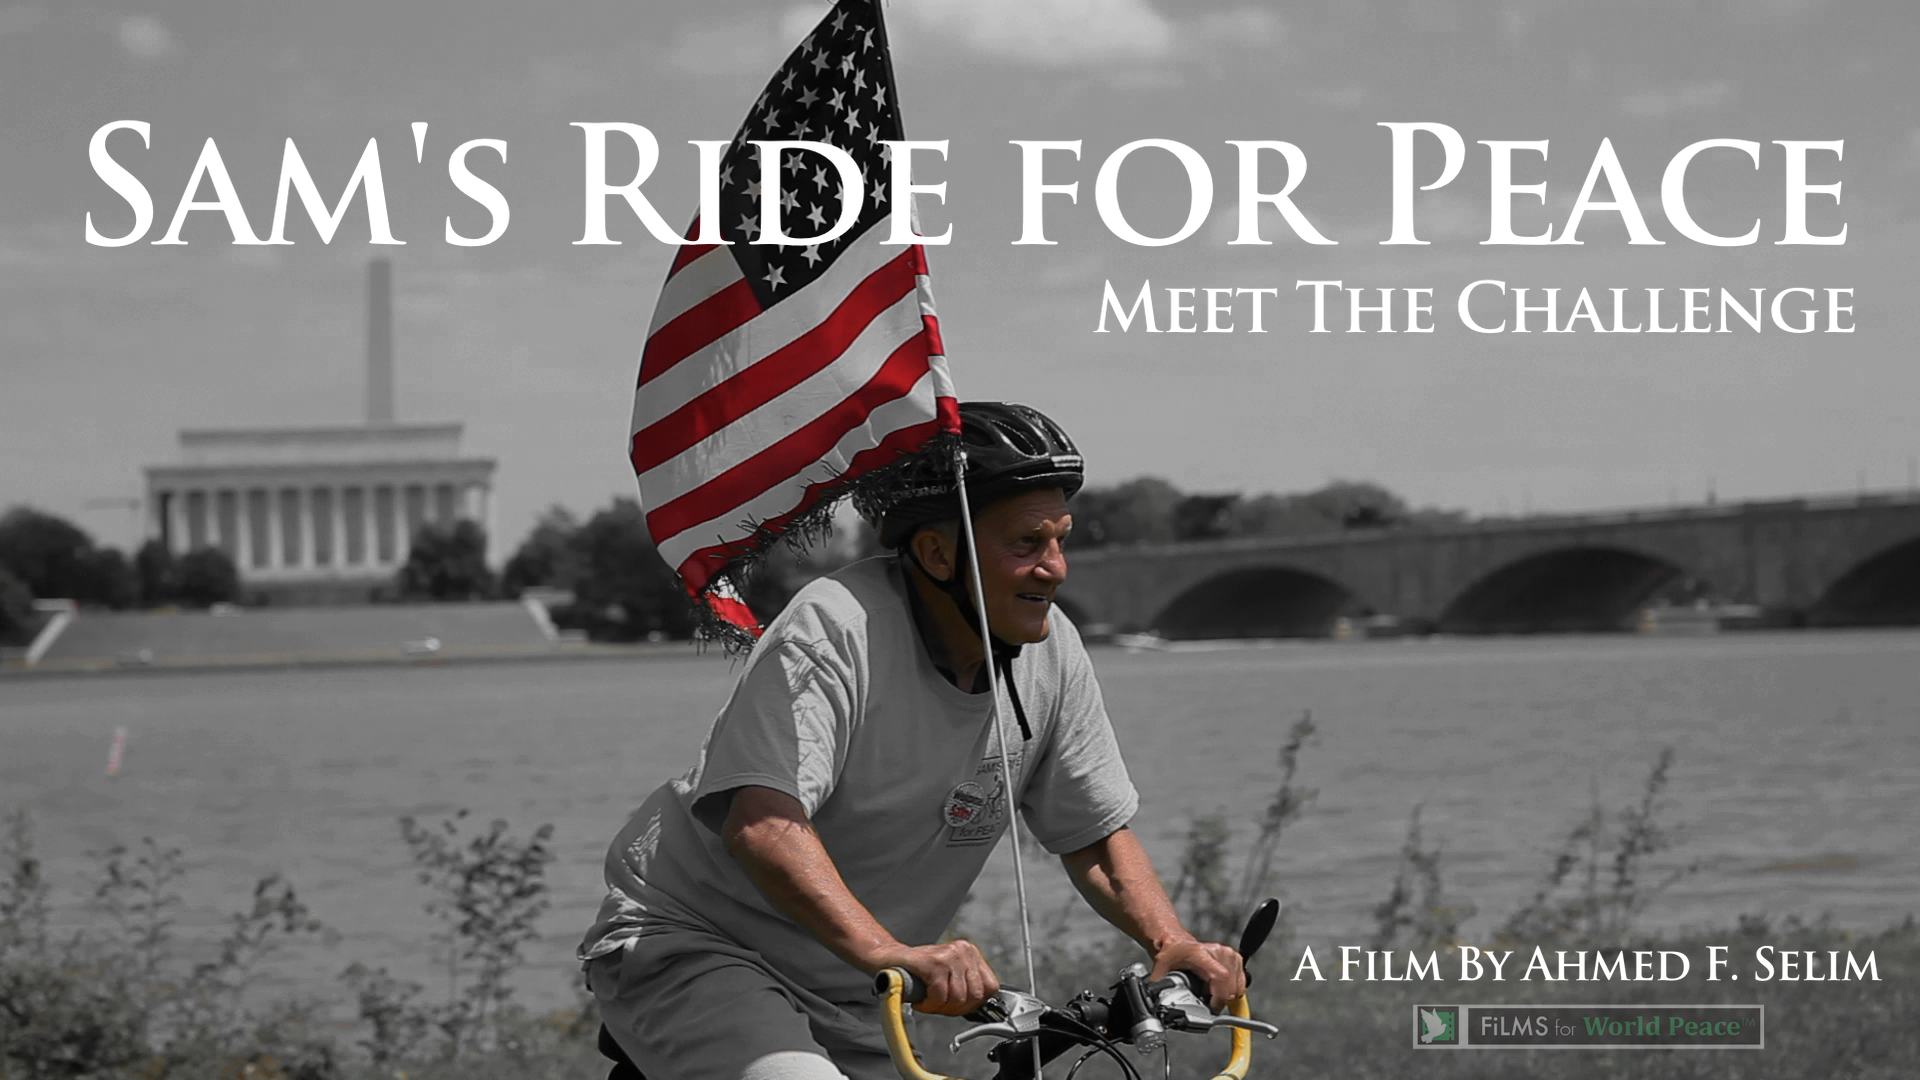 George Ripley brings grassroots to the ride